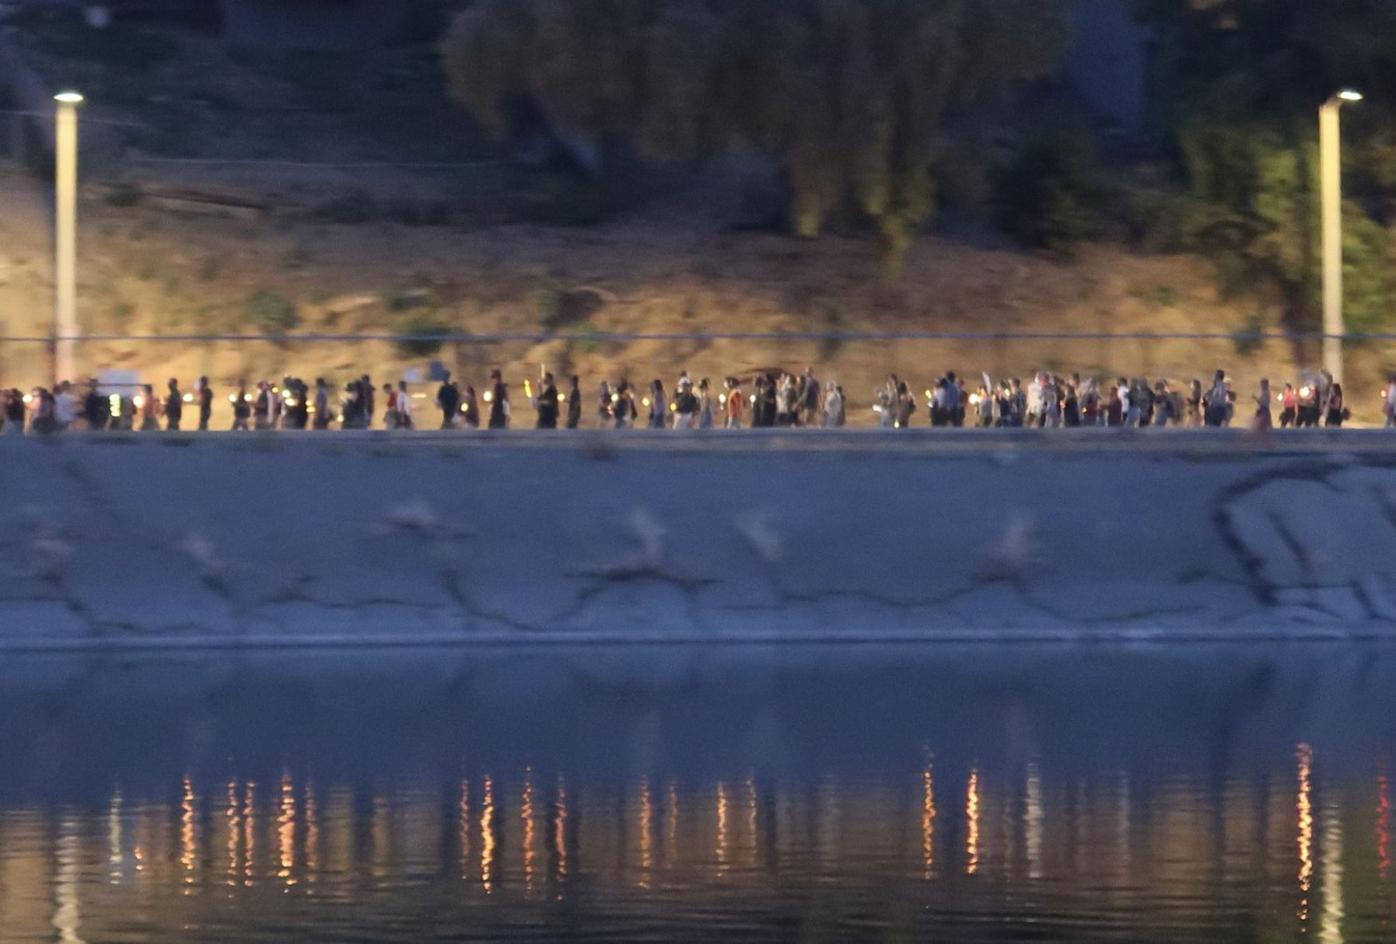 Candlelight vigil at the Silver Lake Reservoir